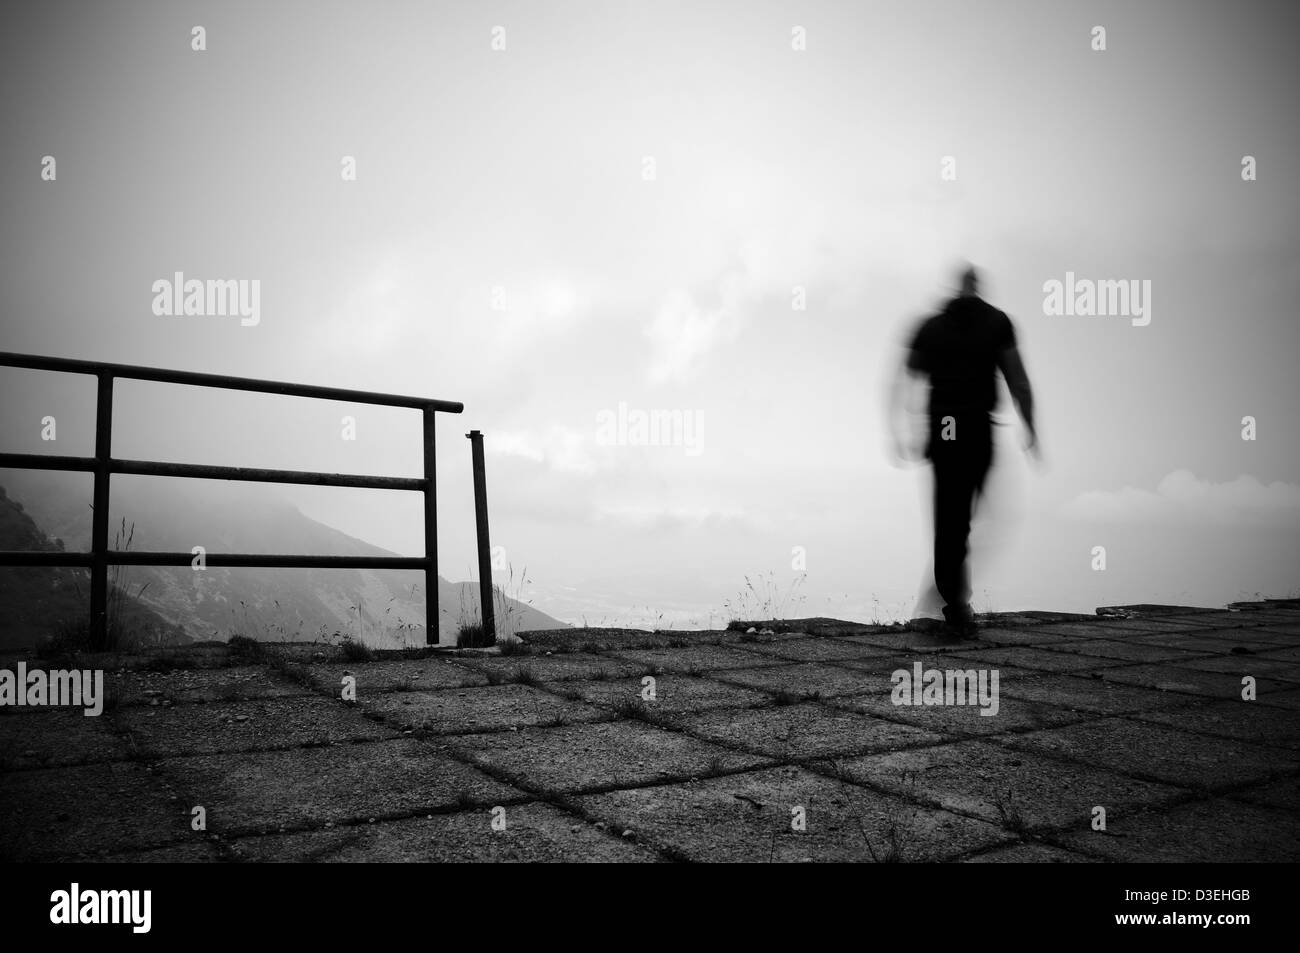 Man jumping into the void - Stock Image